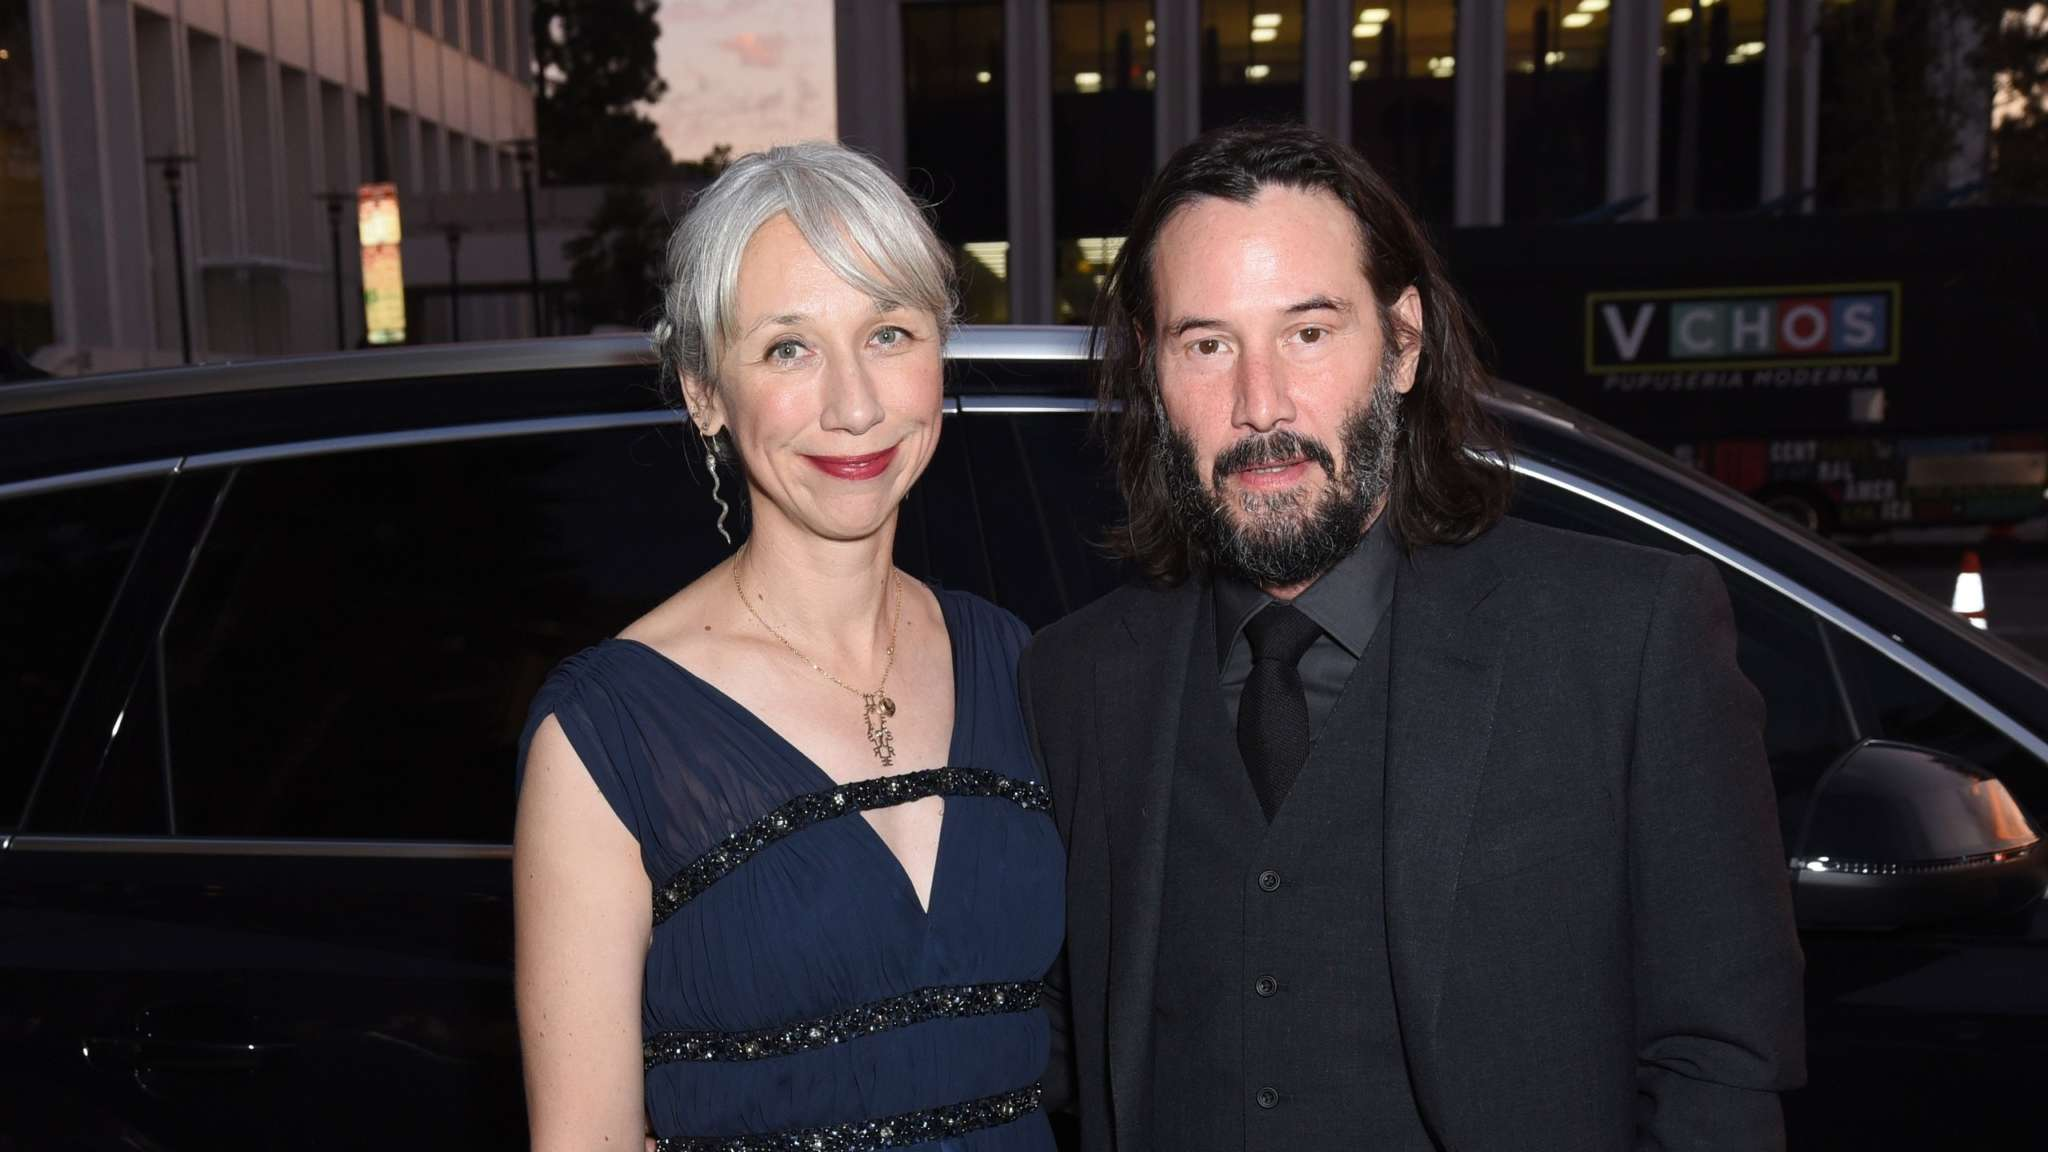 Lover of Keanu Reeves first told about the relationship